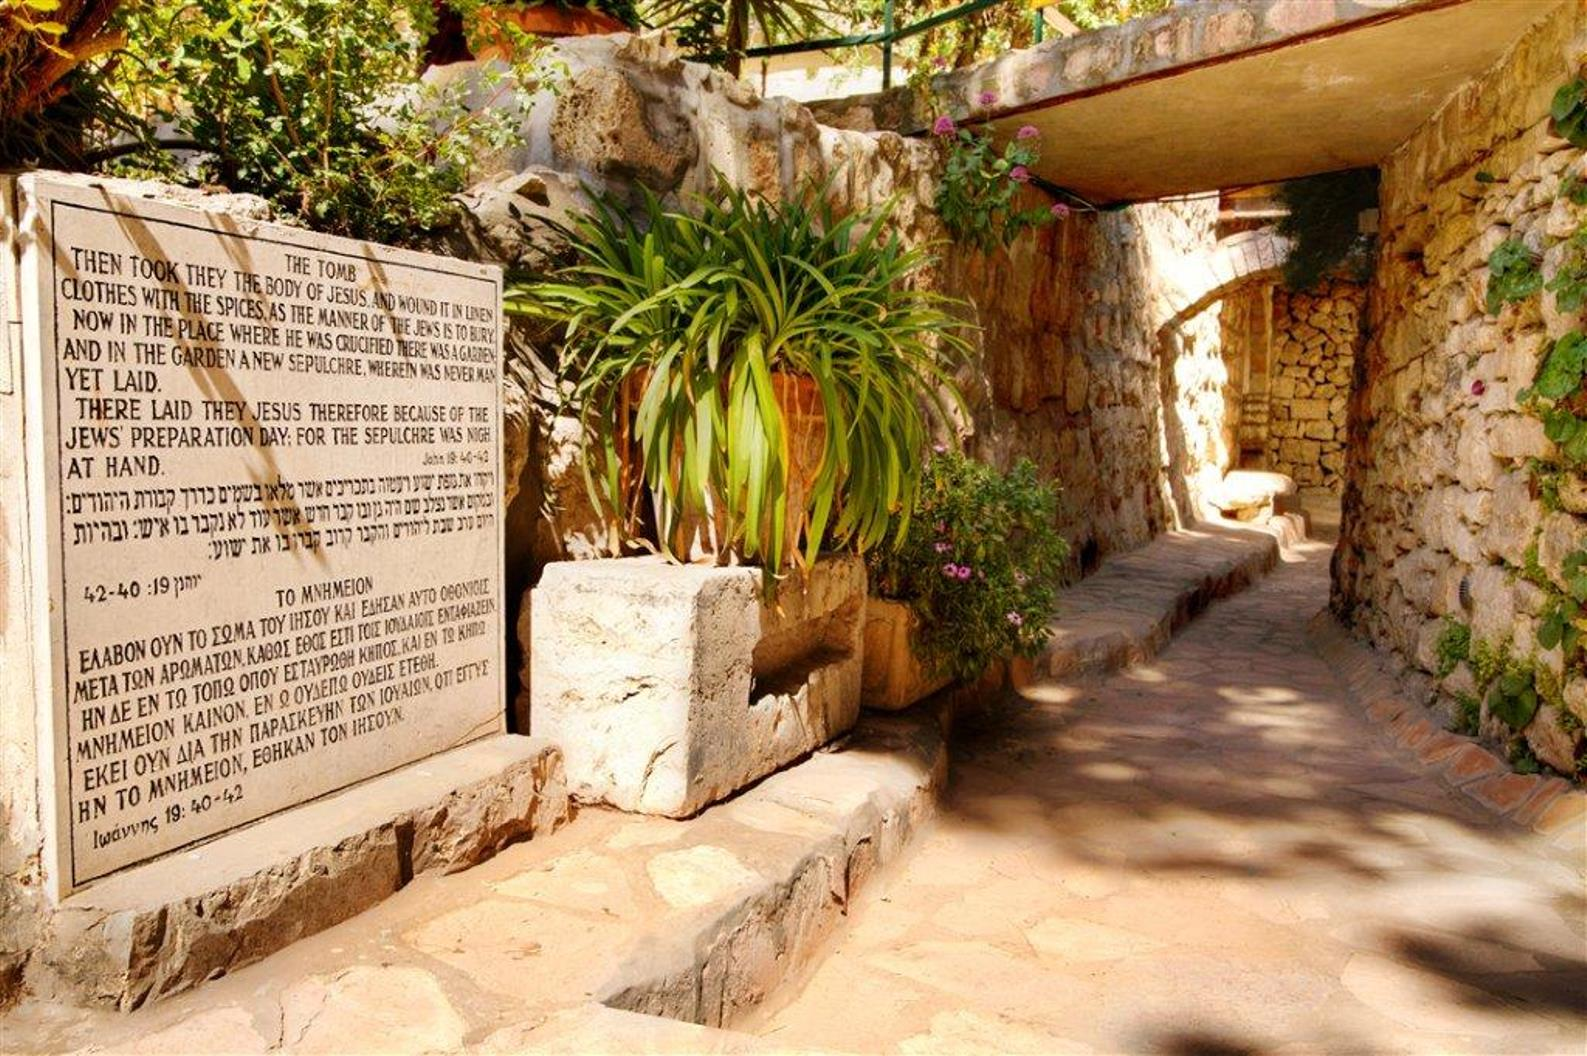 The Garden Tomb in Jerusalem. Photo by Noam Chen/Israel Ministry of Tourism